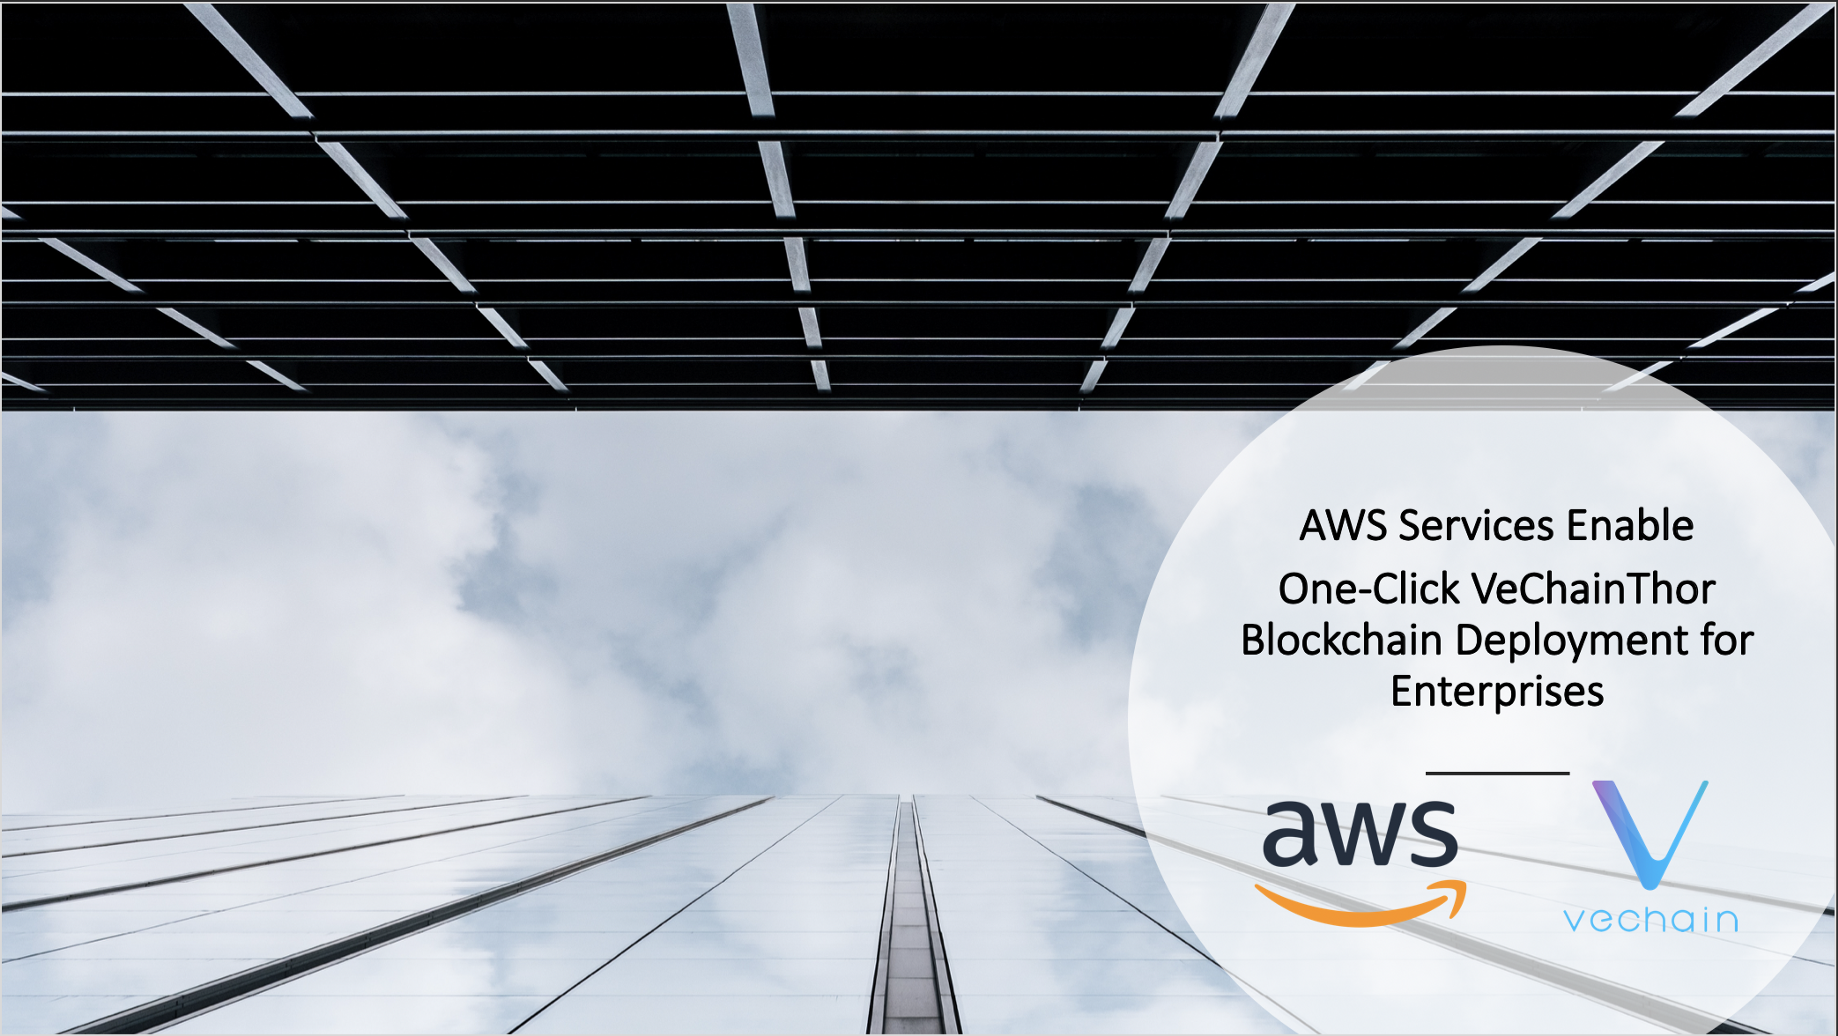 AWS Services Enable One-Click VeChainThor Blockchain Deployment for